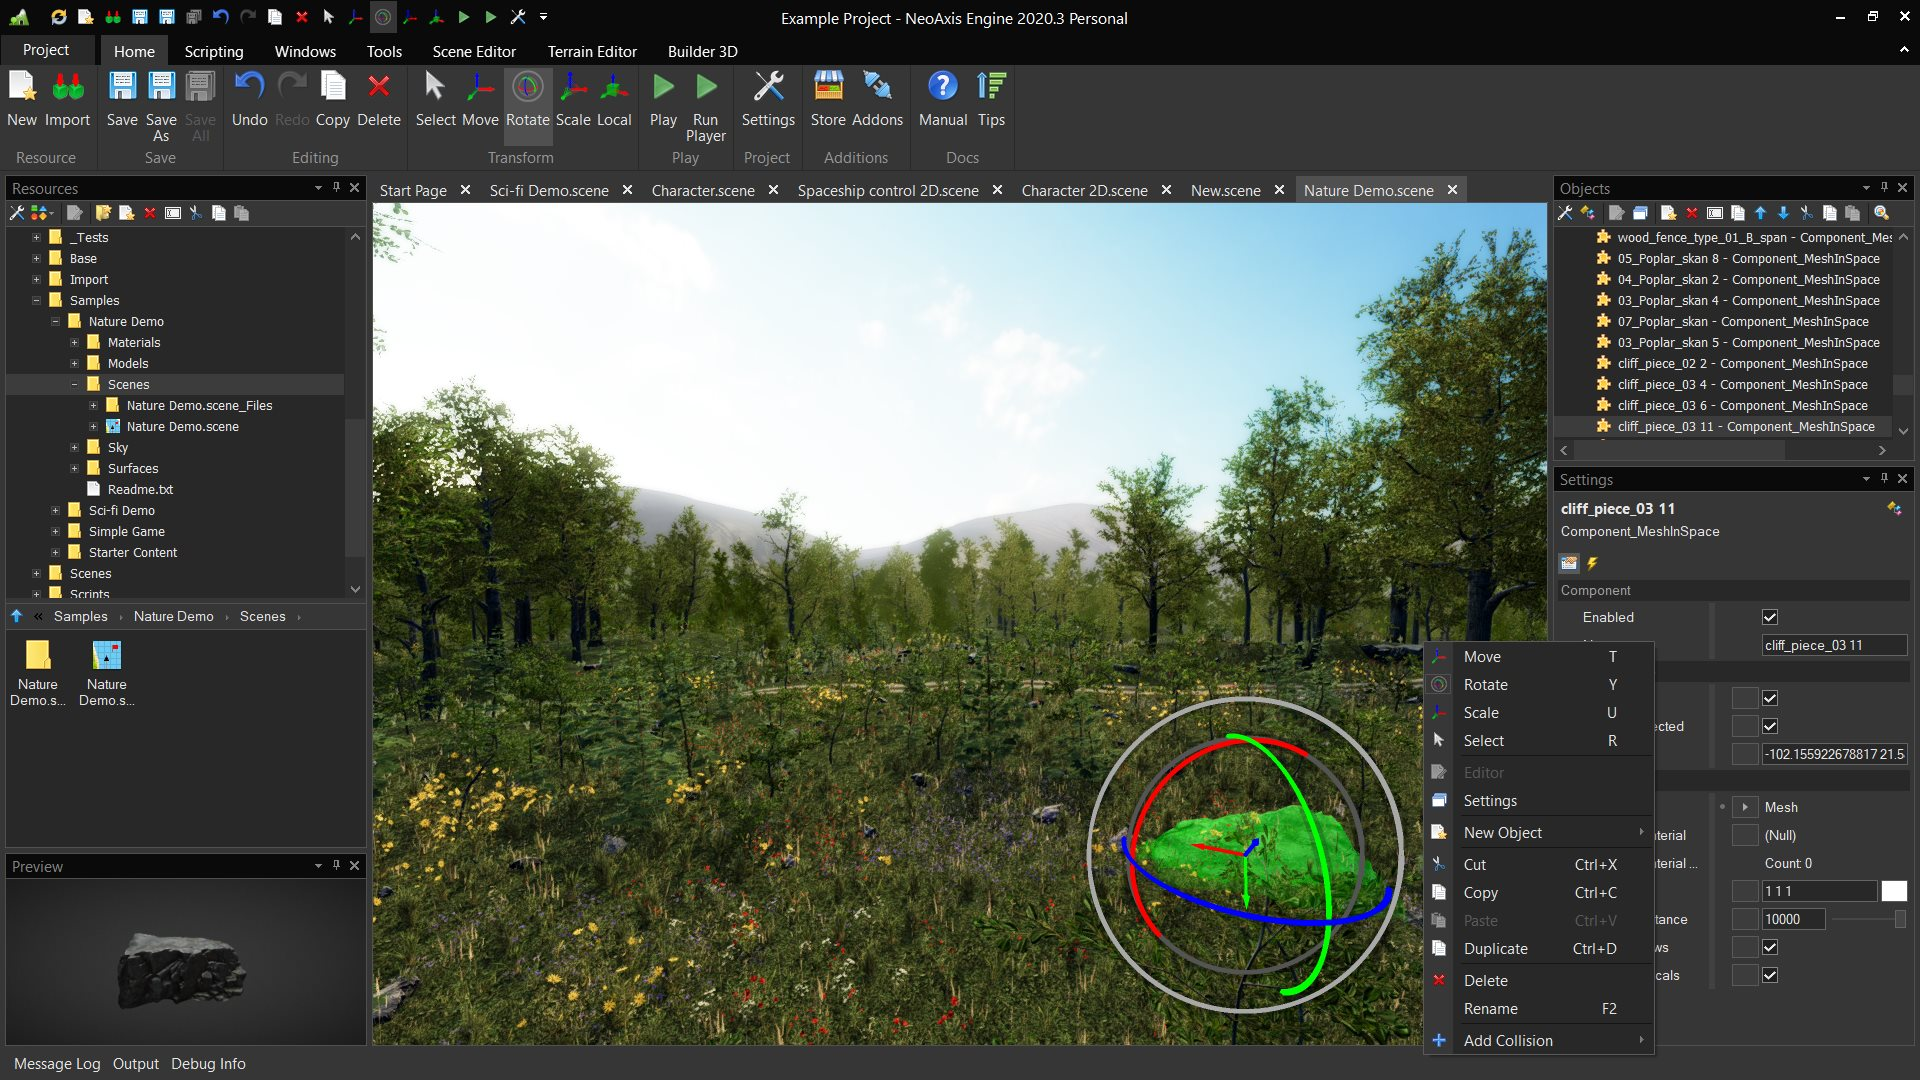 NeoAxis Engine 2020.3がリリースされました